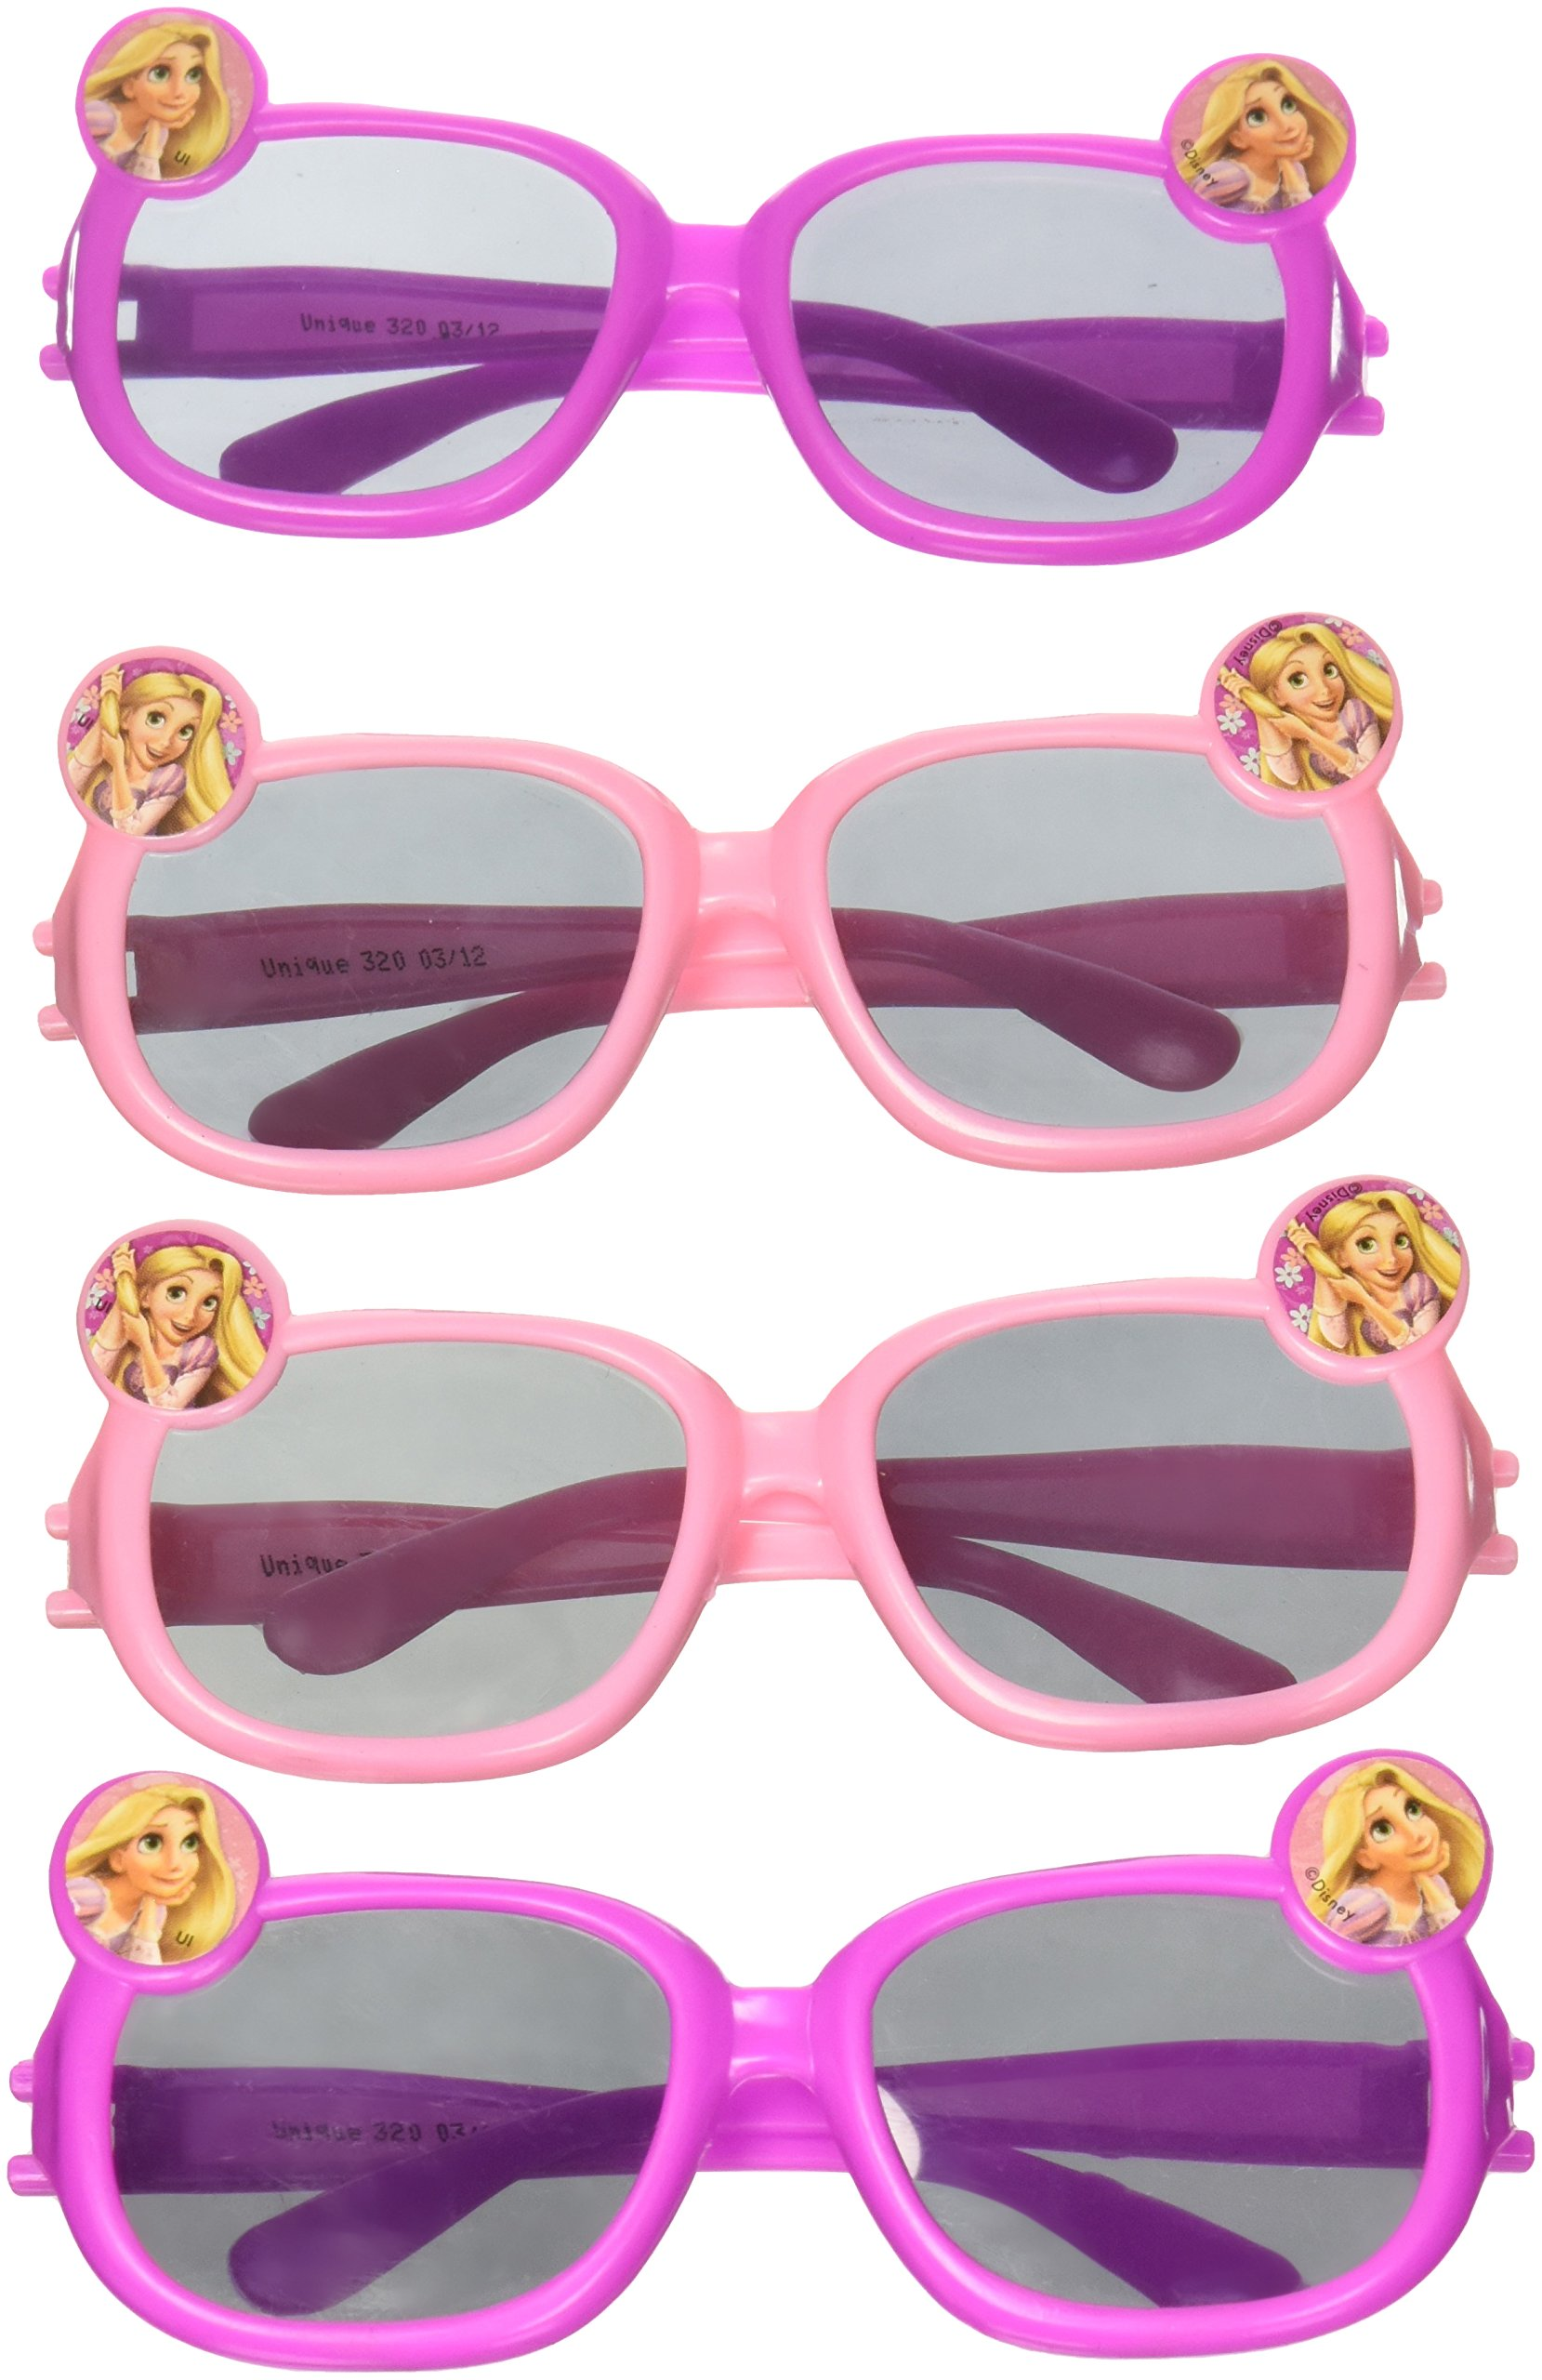 Disney Tangled Novelty Glasses Party Favors, 4ct